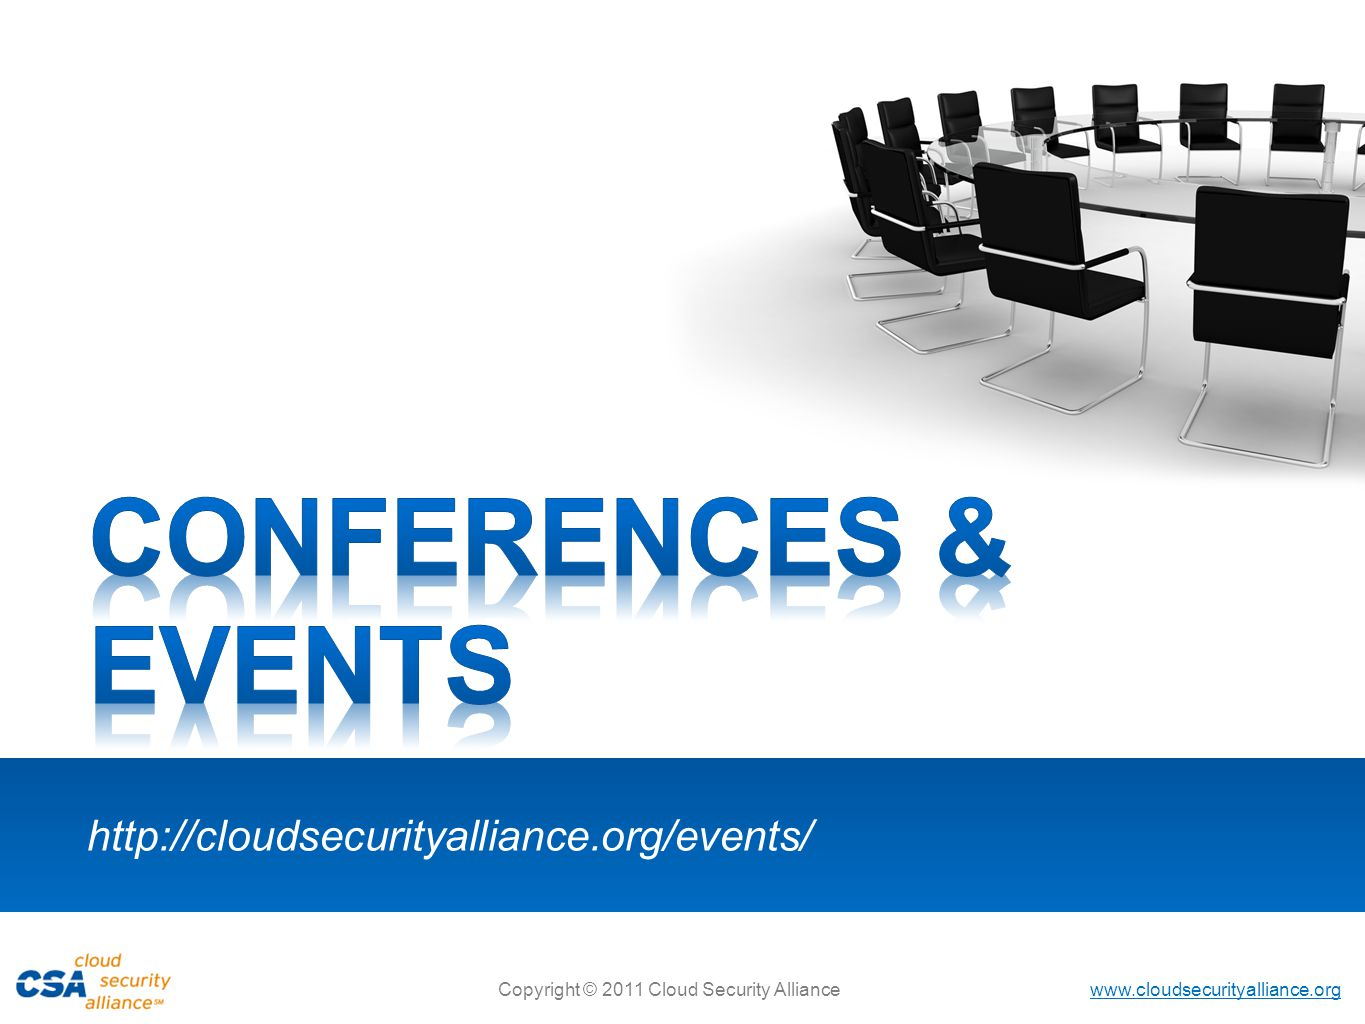 CONFERENCES & EVENTS http://cloudsecurityalliance.org/events/ 34